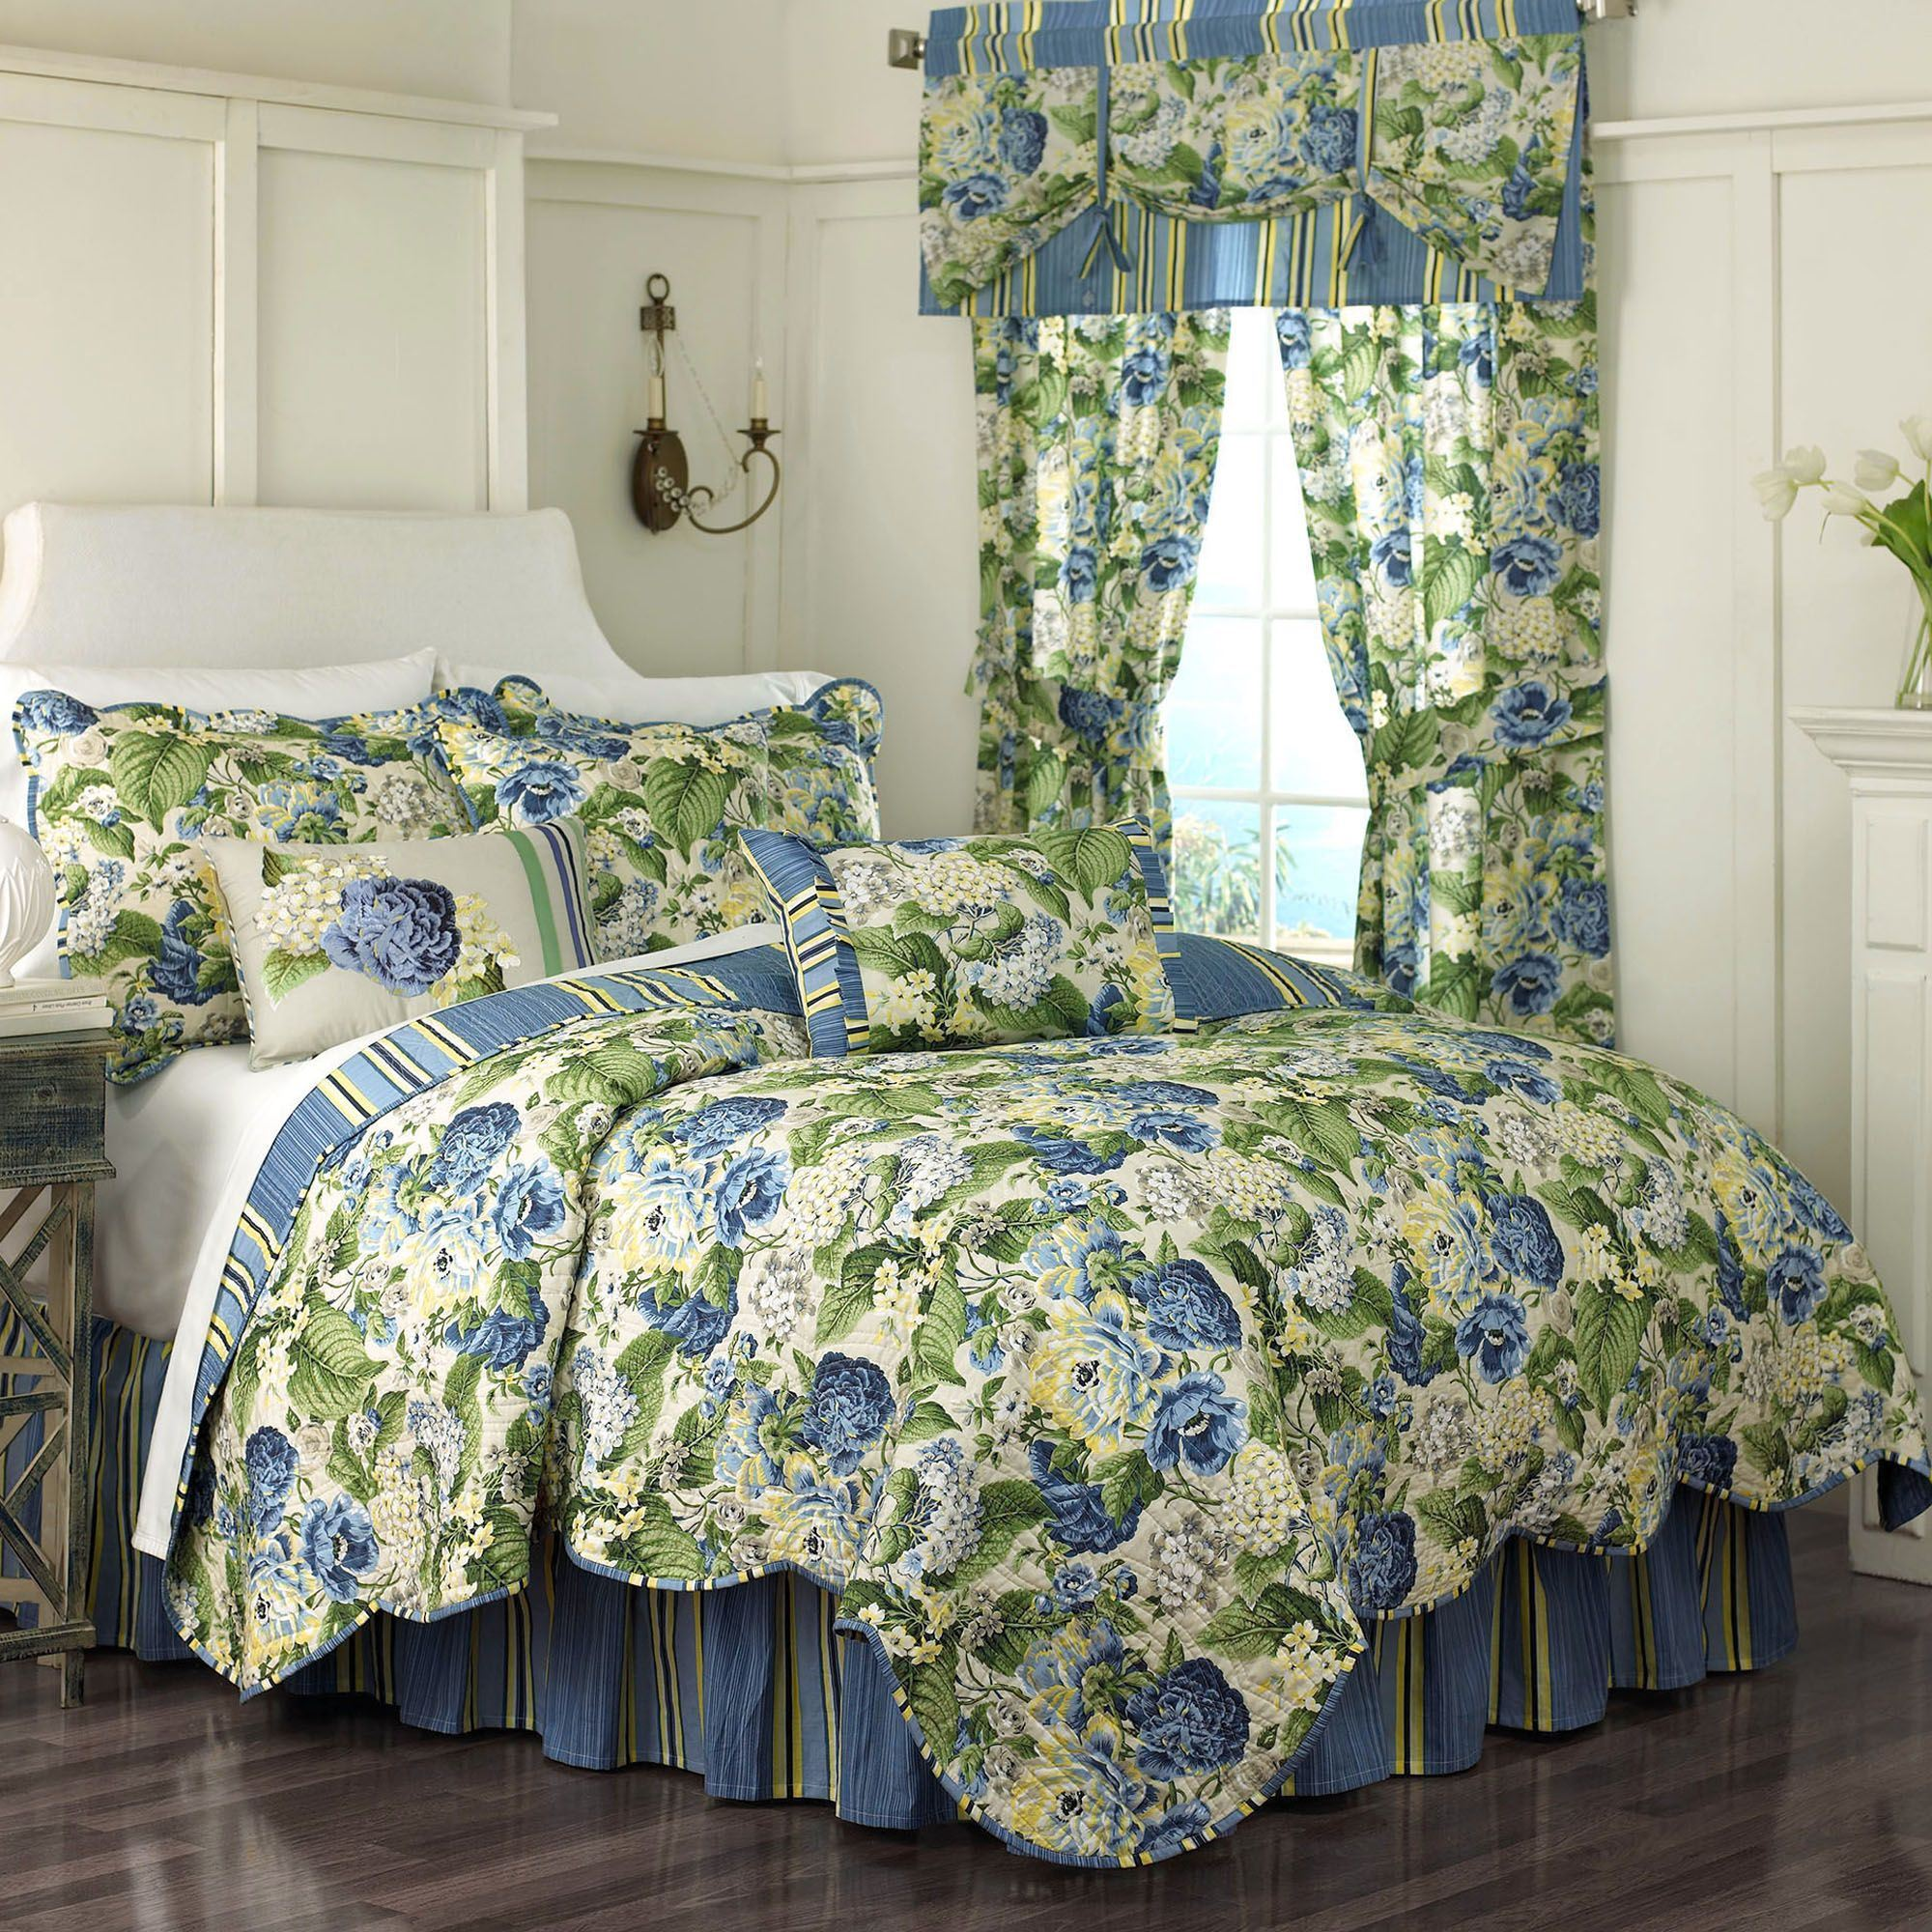 bedroom quilt sets waverly comforter discontinued white horchow quilts dillards collections bedding sale